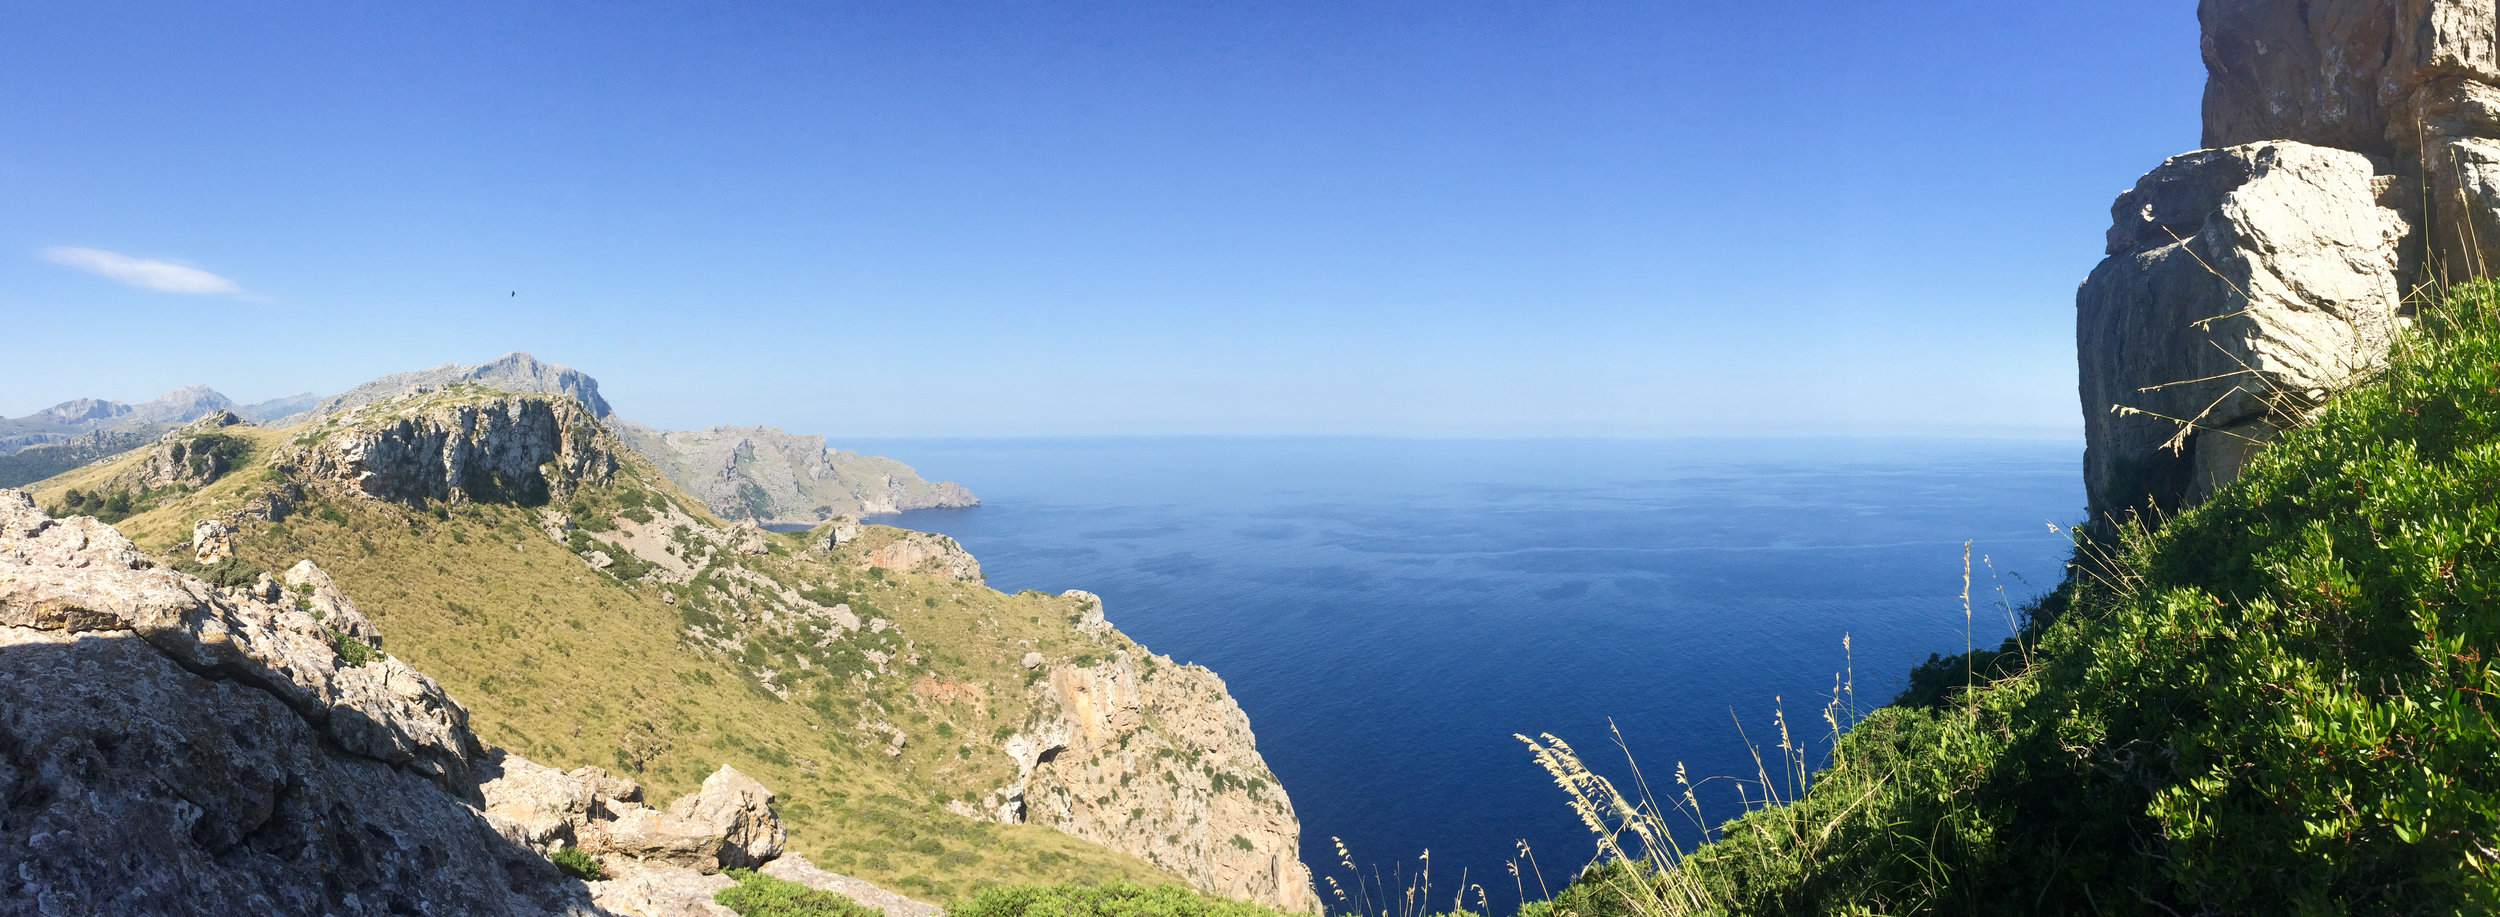 Looking West from the foot of the fortress revealed Mallorca's stunning coastline.